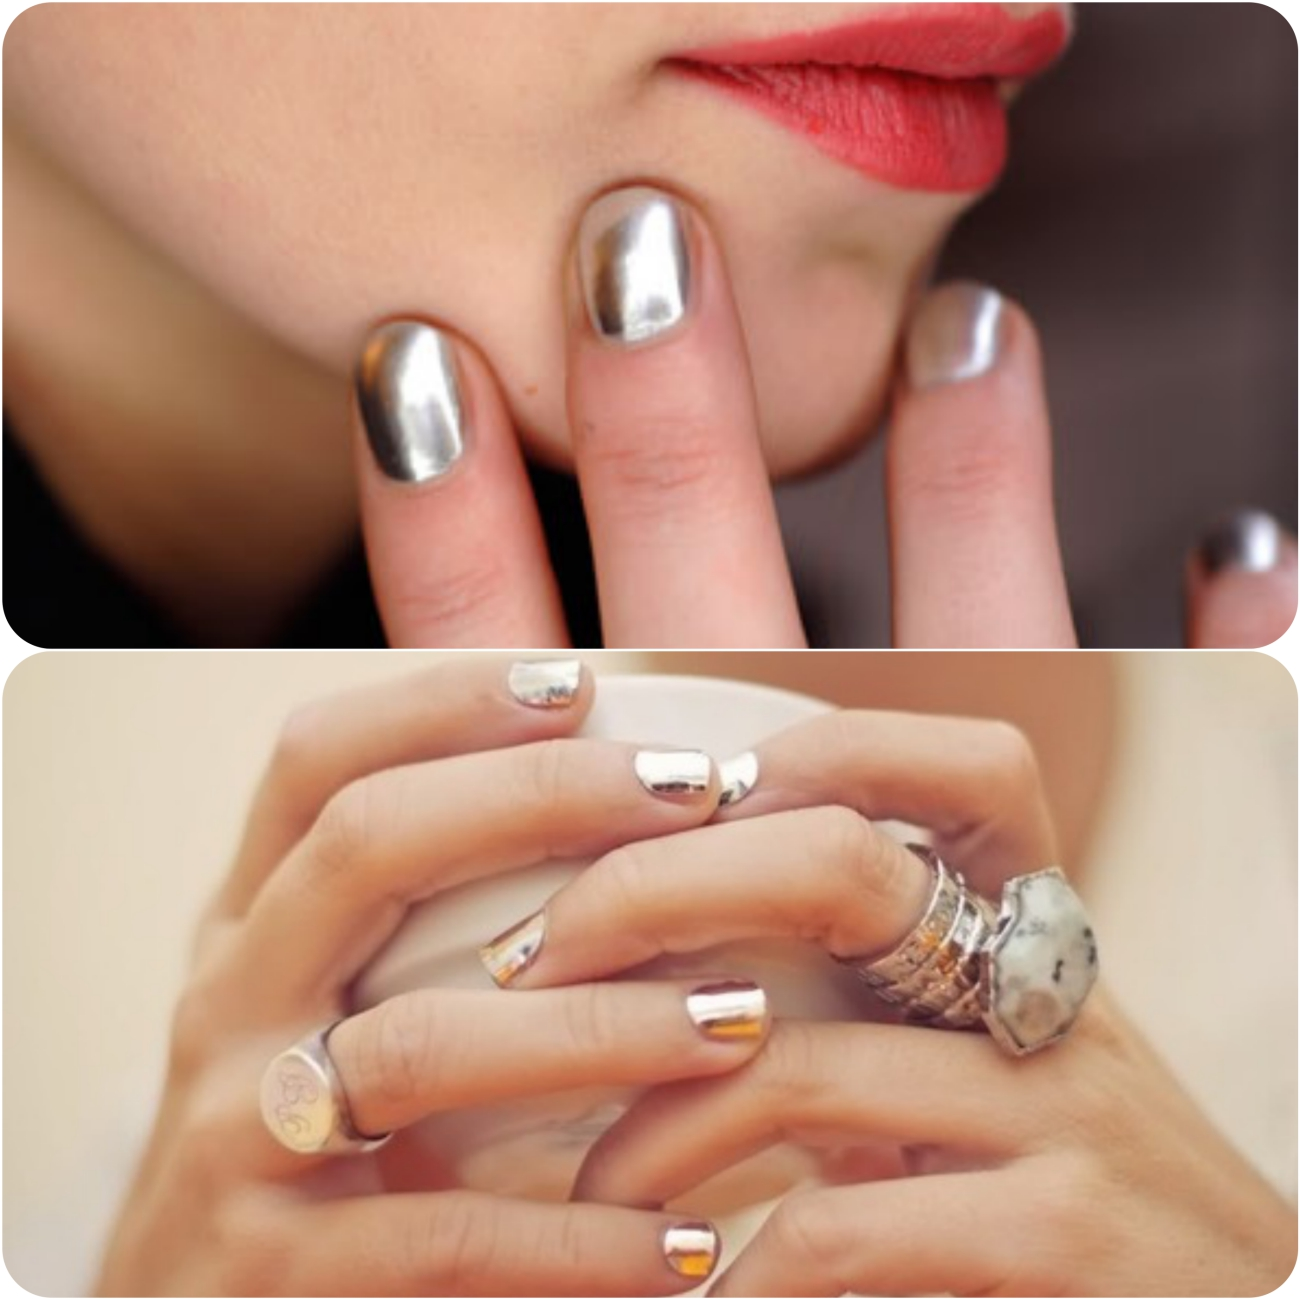 Best Dazzling Reflecting Nail Art Designs For Girls....styloplanet (3)